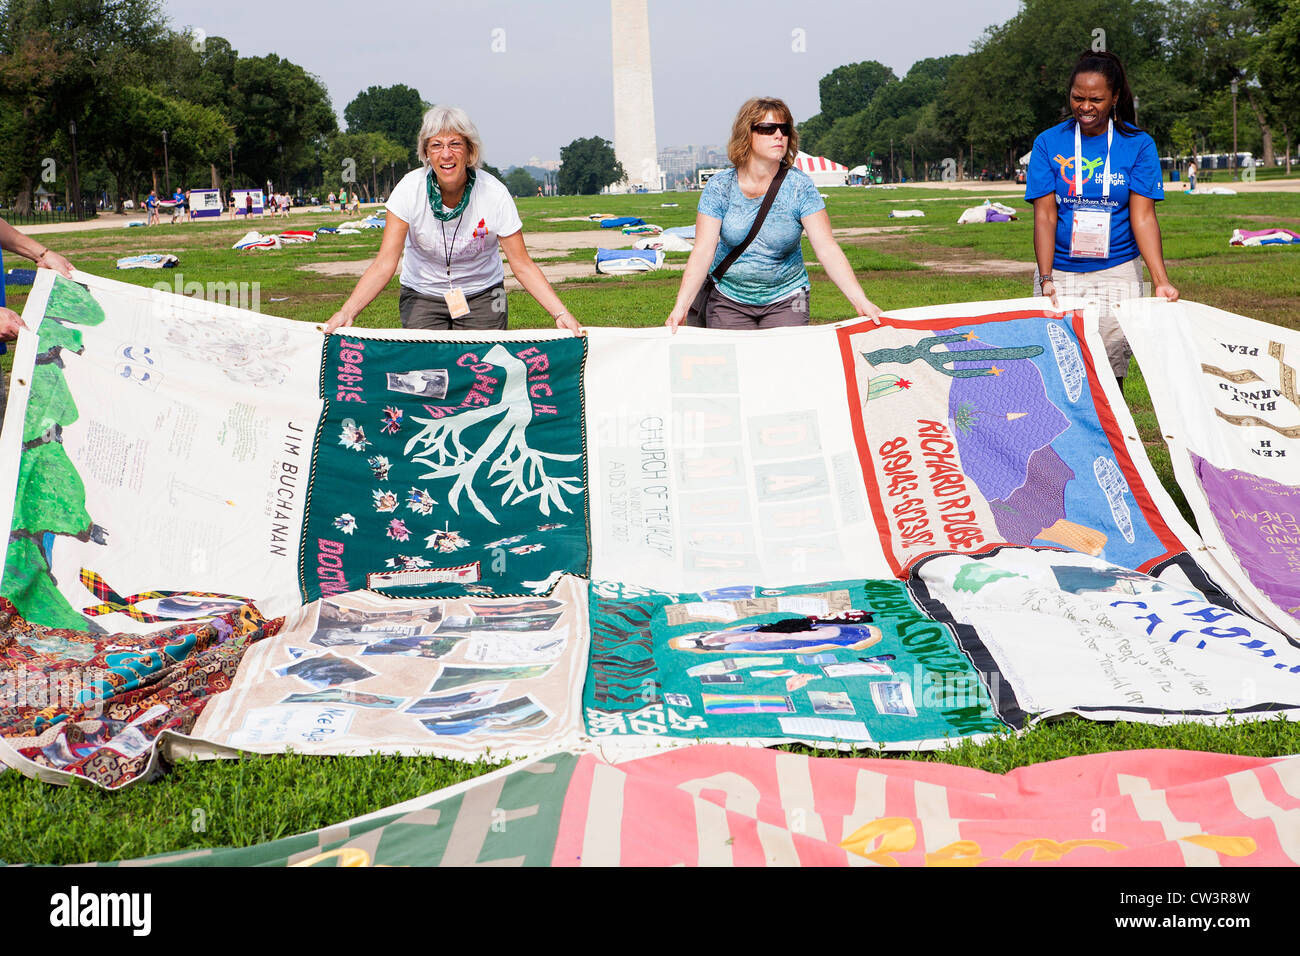 The AIDS Quilt display on the National Mall in Washington, DC.  - Stock Image